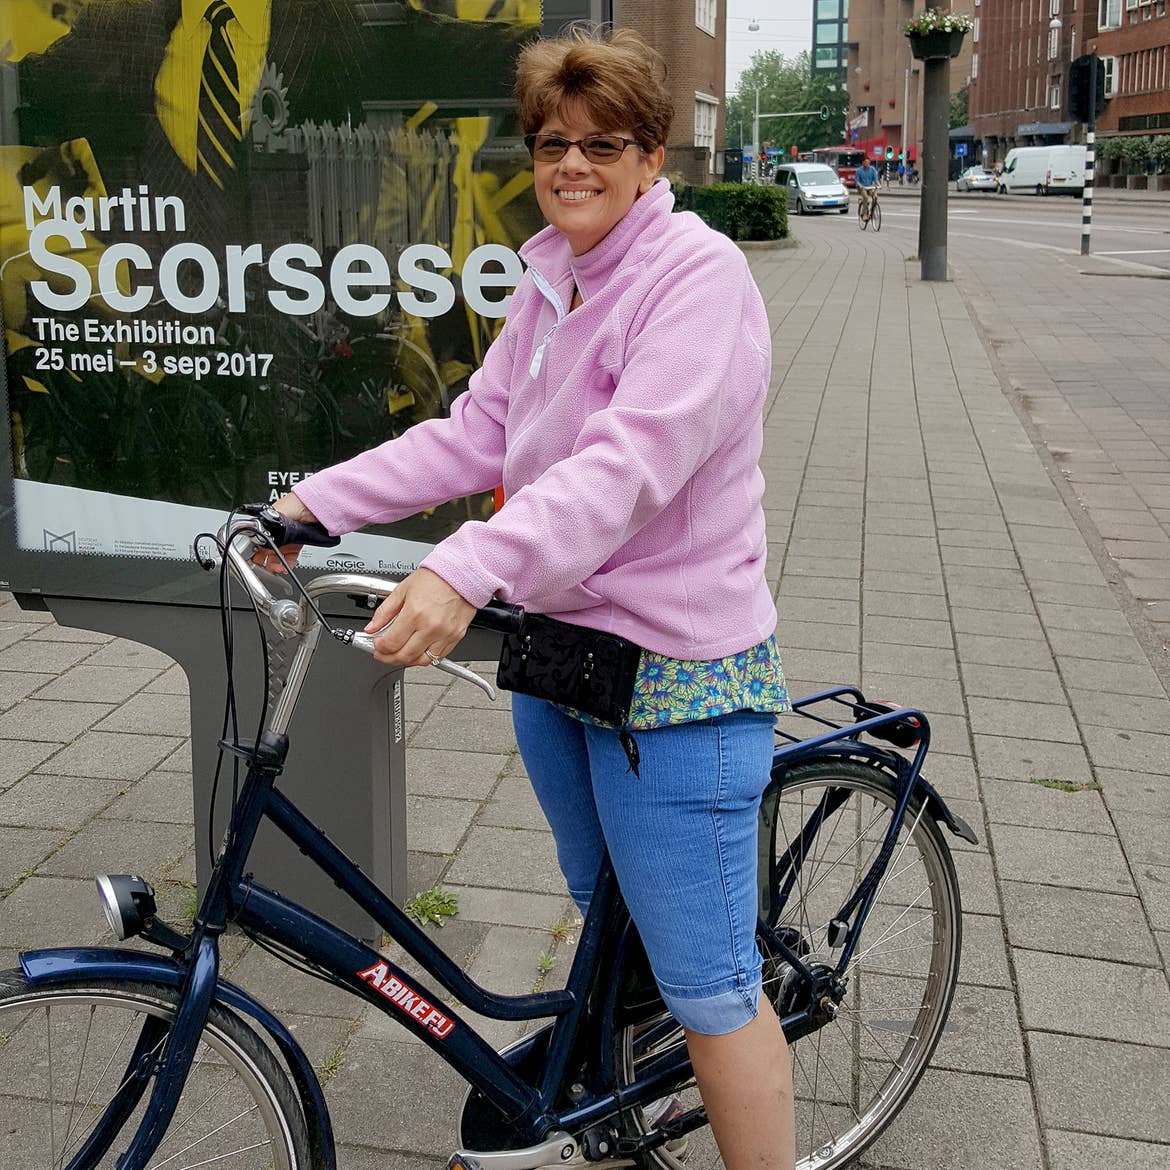 A caucasian woman wearing a pink fleece sweater and jeans sits atop a bicycle on the streets of Amsterdam.